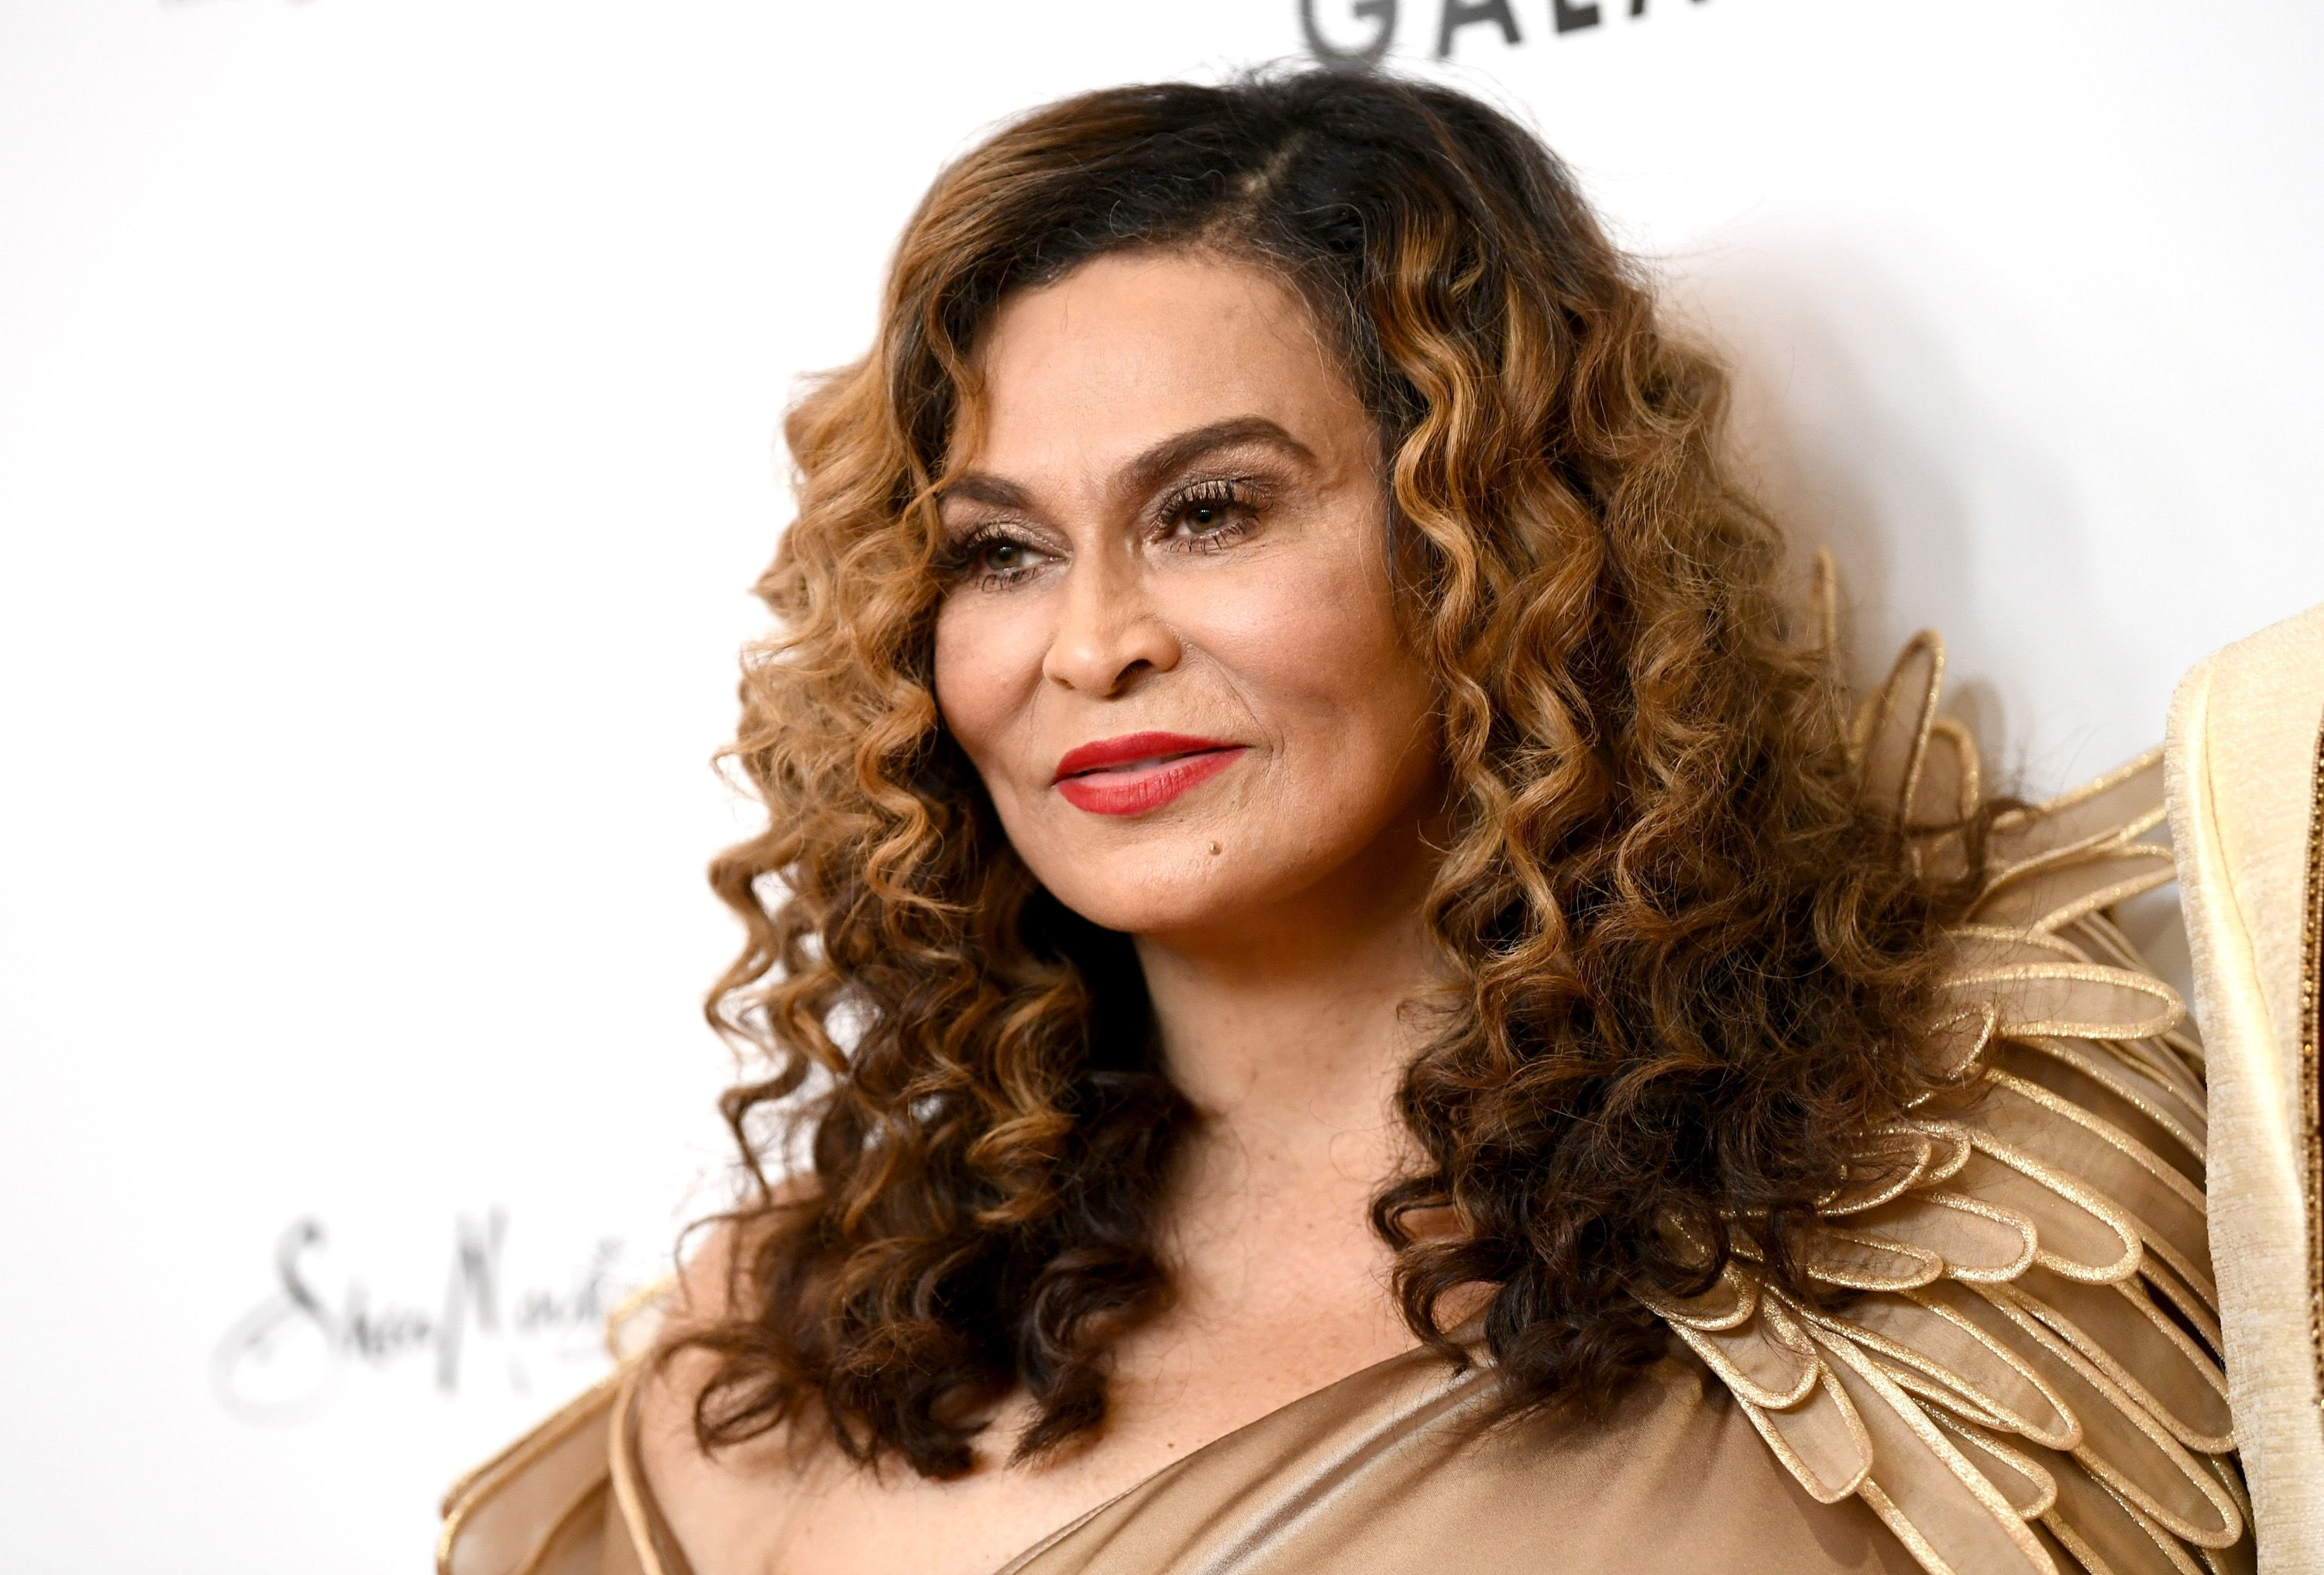 Tina Knowles at WACO Theater's 2nd Annual Wearable Art Gala on March 17, 2018 in Los Angeles, California | Photo: Getty Images